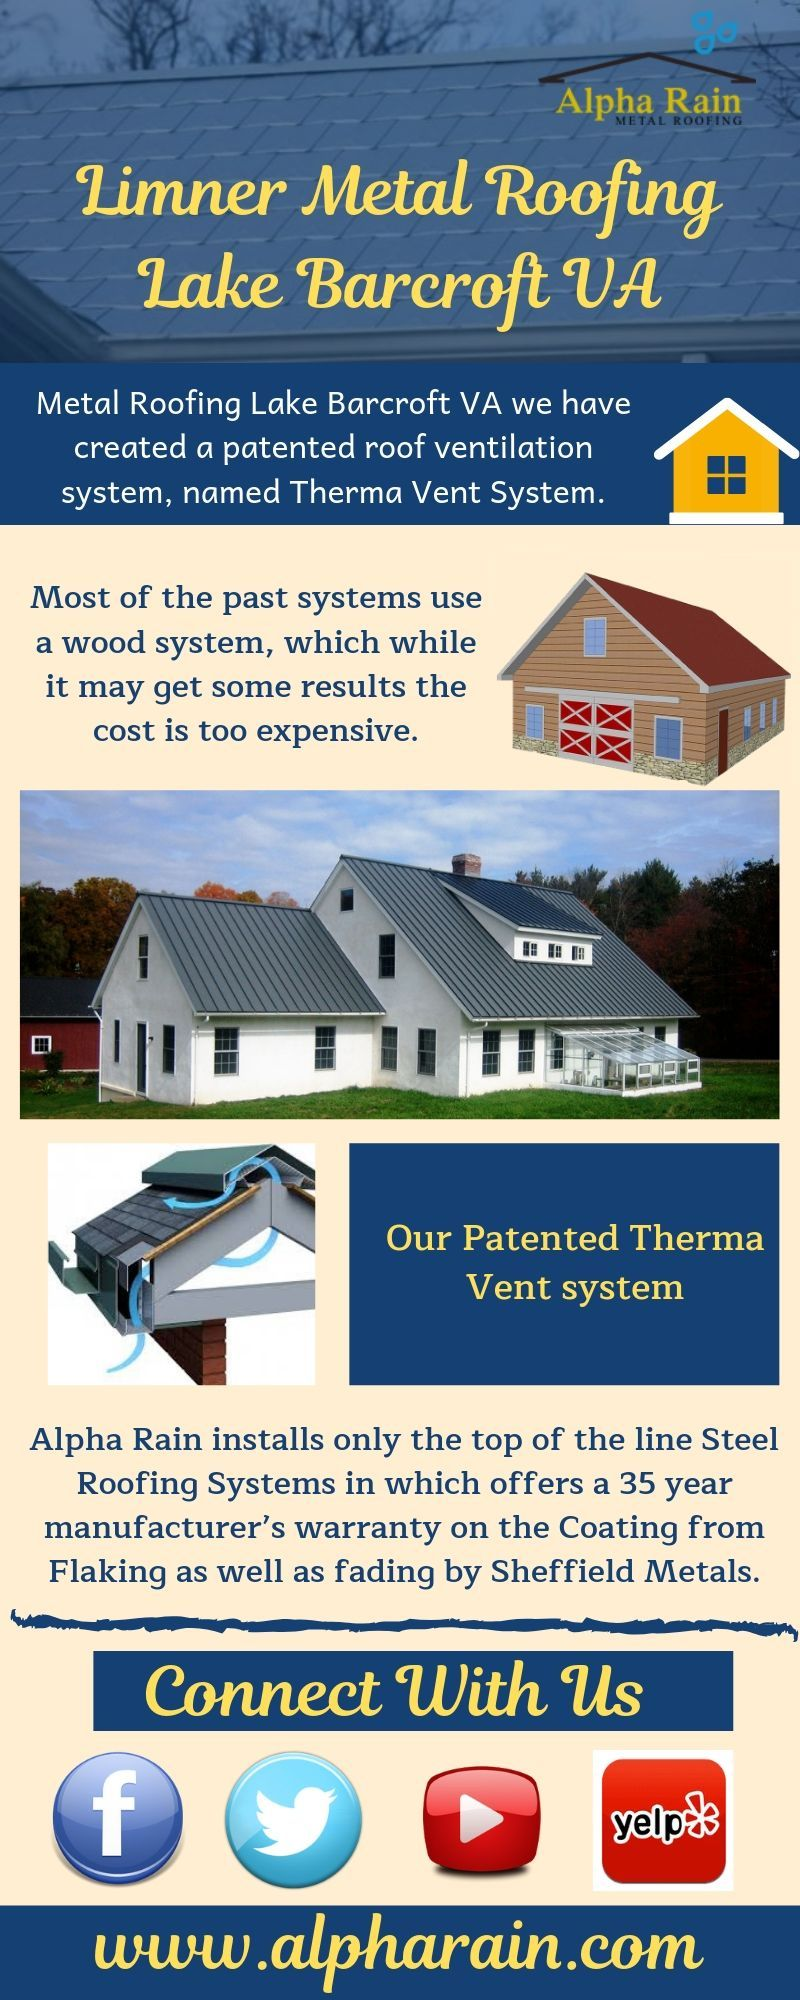 Metal Roofing Lake Barcroft Va By Alpha Rain Contractors Roofing Metal Roof Ventilation System